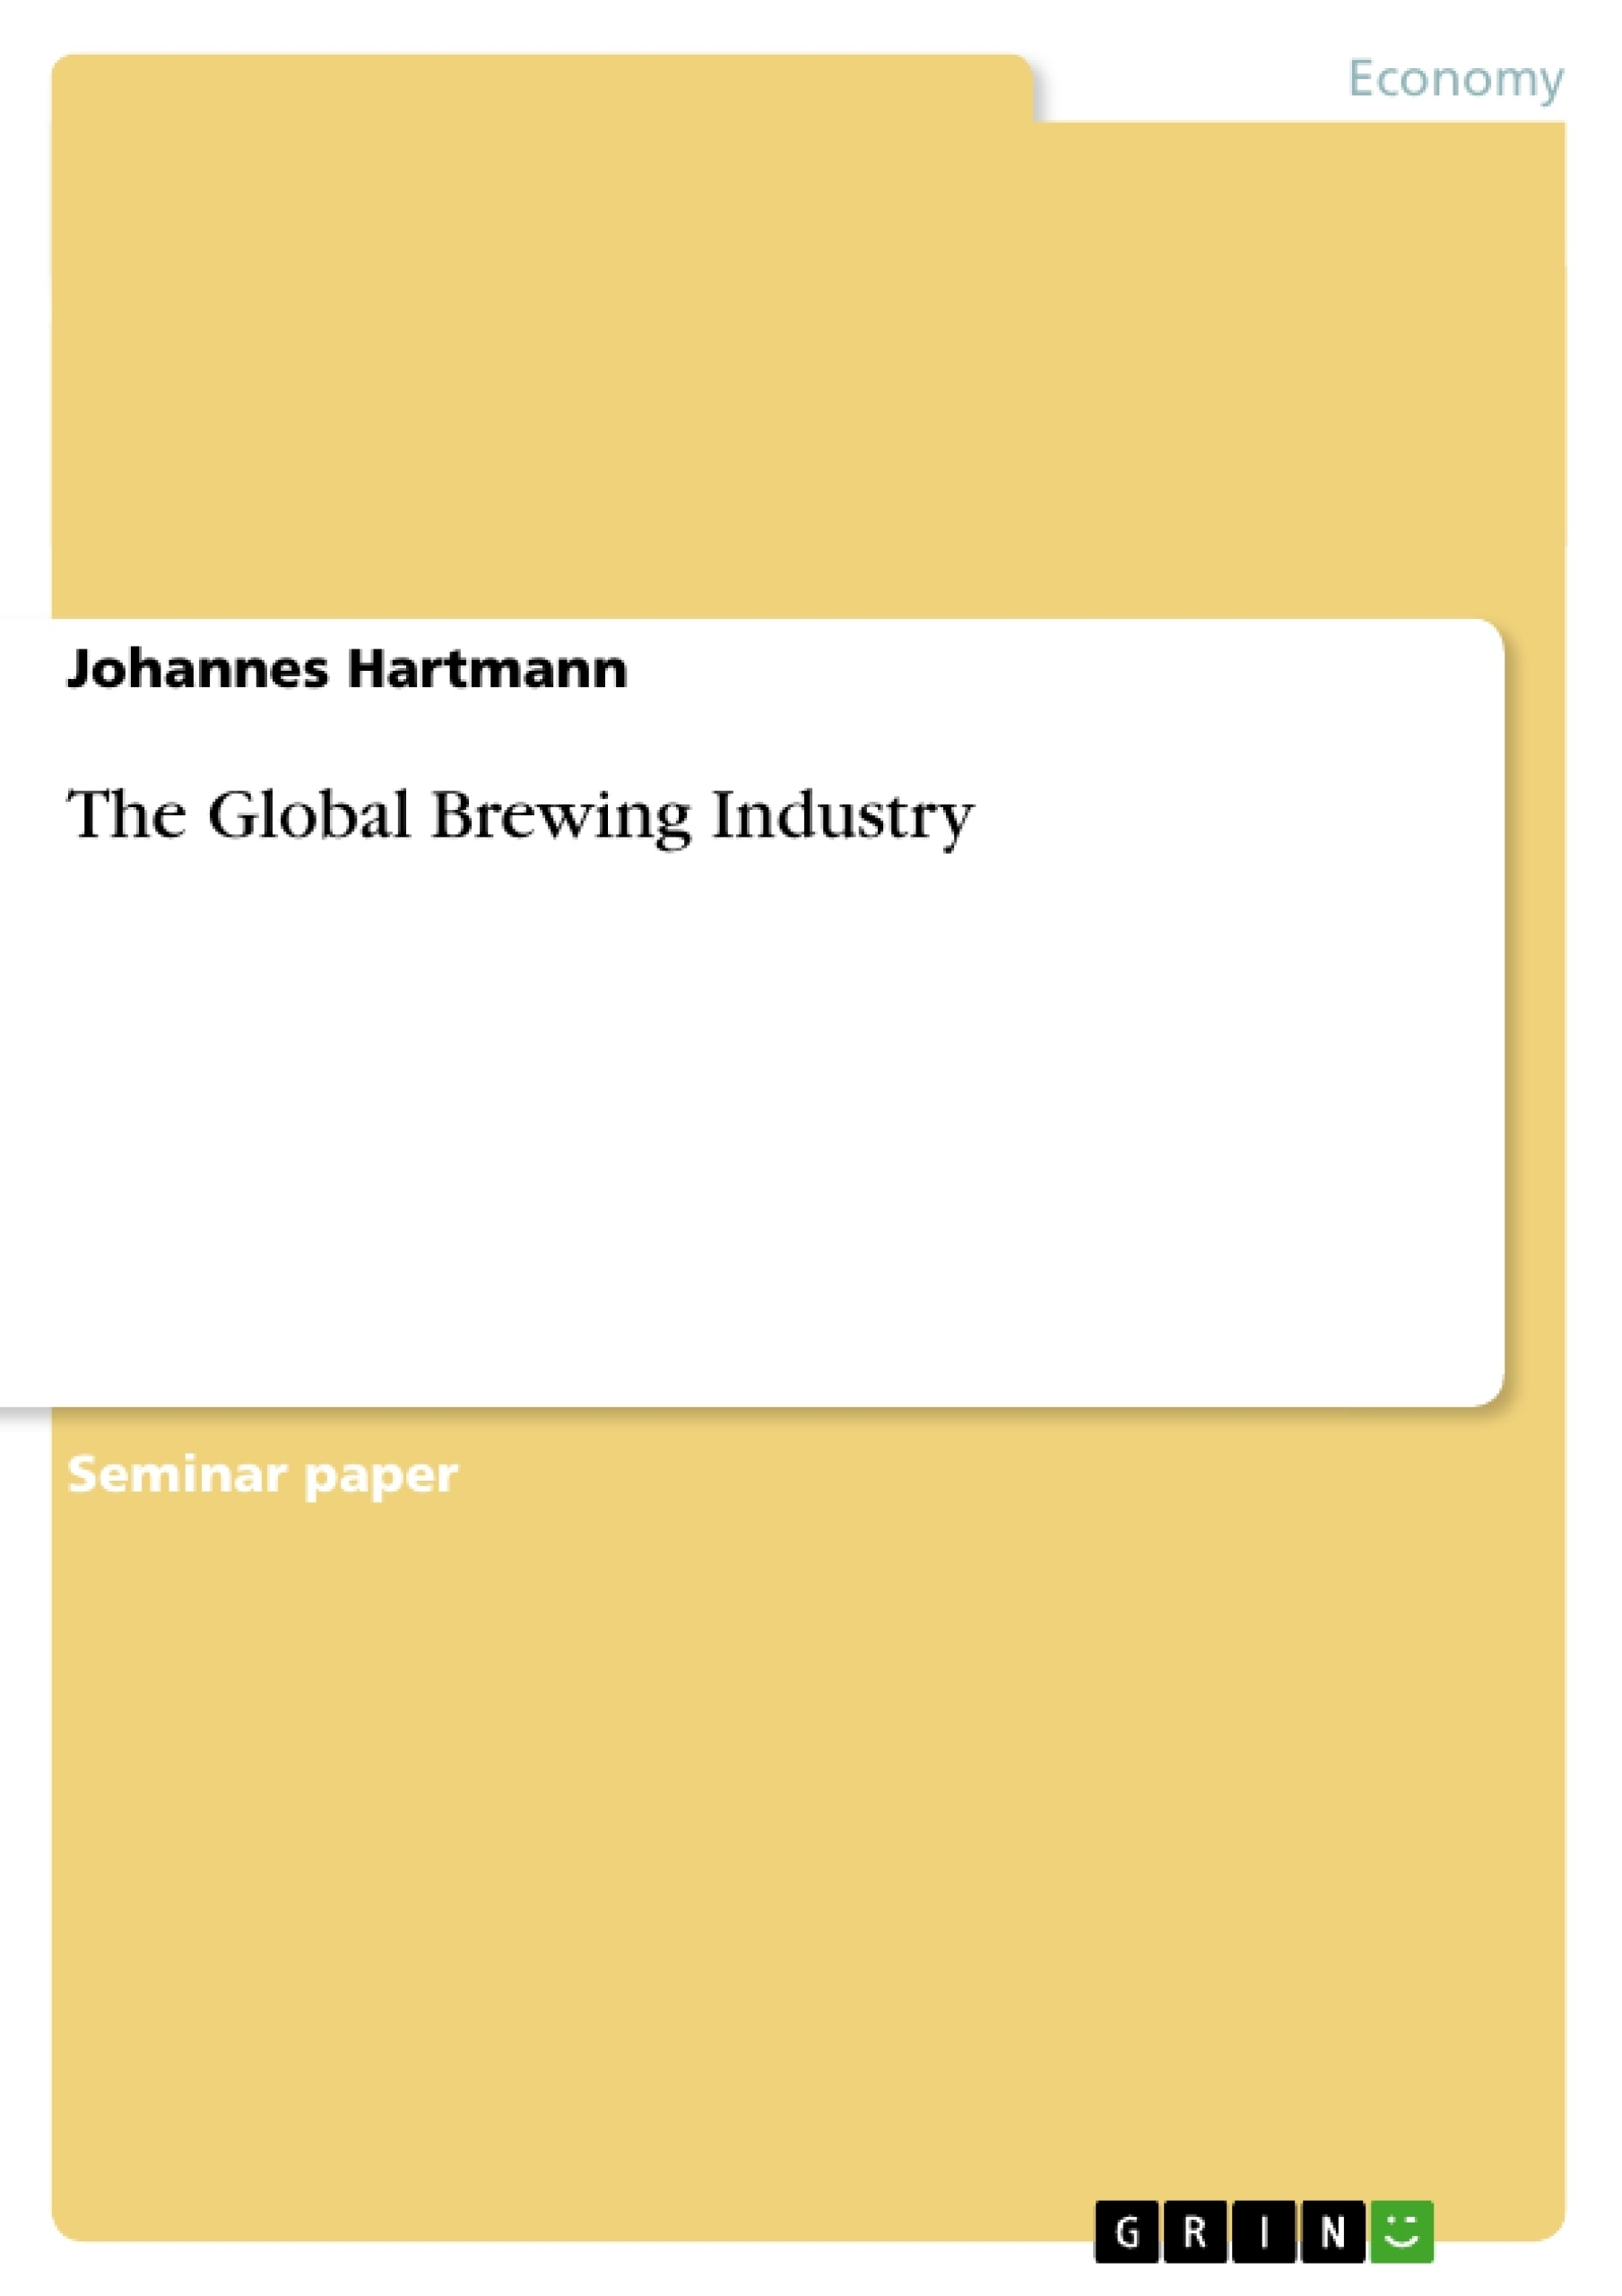 Title: The Global Brewing Industry